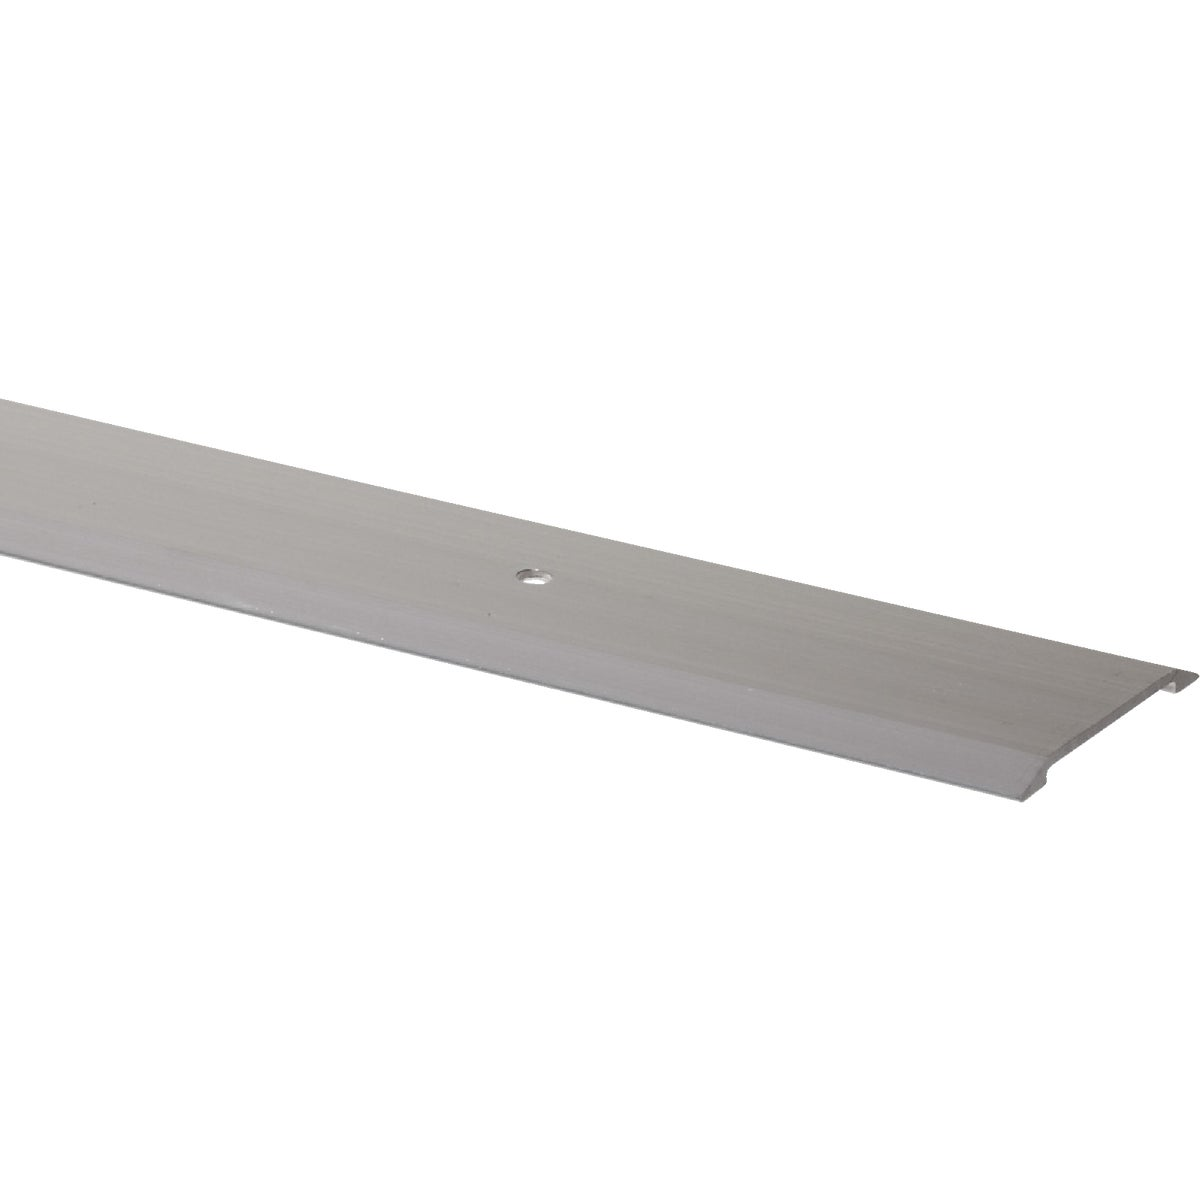 """36""""SLVR SADDLE THRESHOLD - ST175DI by Thermwell Prods Co"""